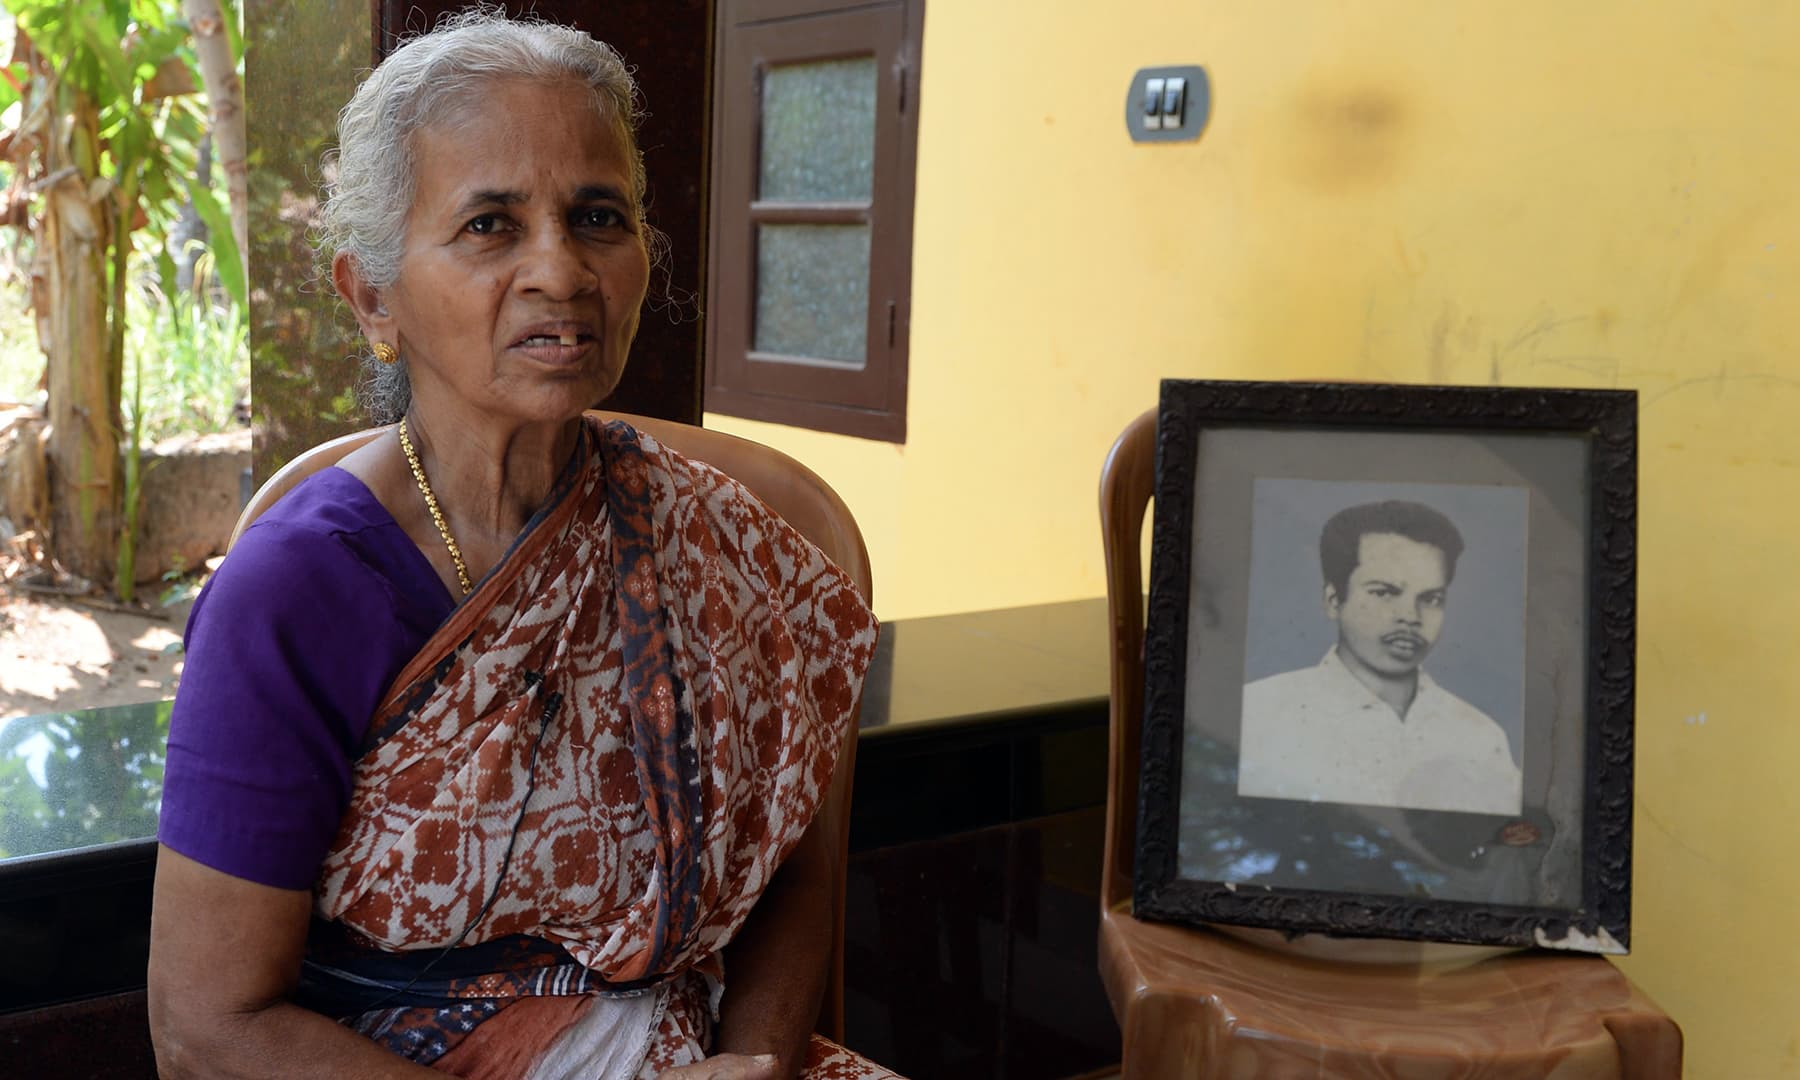 B.N. Leela, the widow of Vadekkal Ramakrishnan, who was one of the first Rashtriya Swayamsevak Sangh (RSS) members killed in political violence, sits beside the portrait of her late husband during an interview with AFP at Thalaserry. — AFP